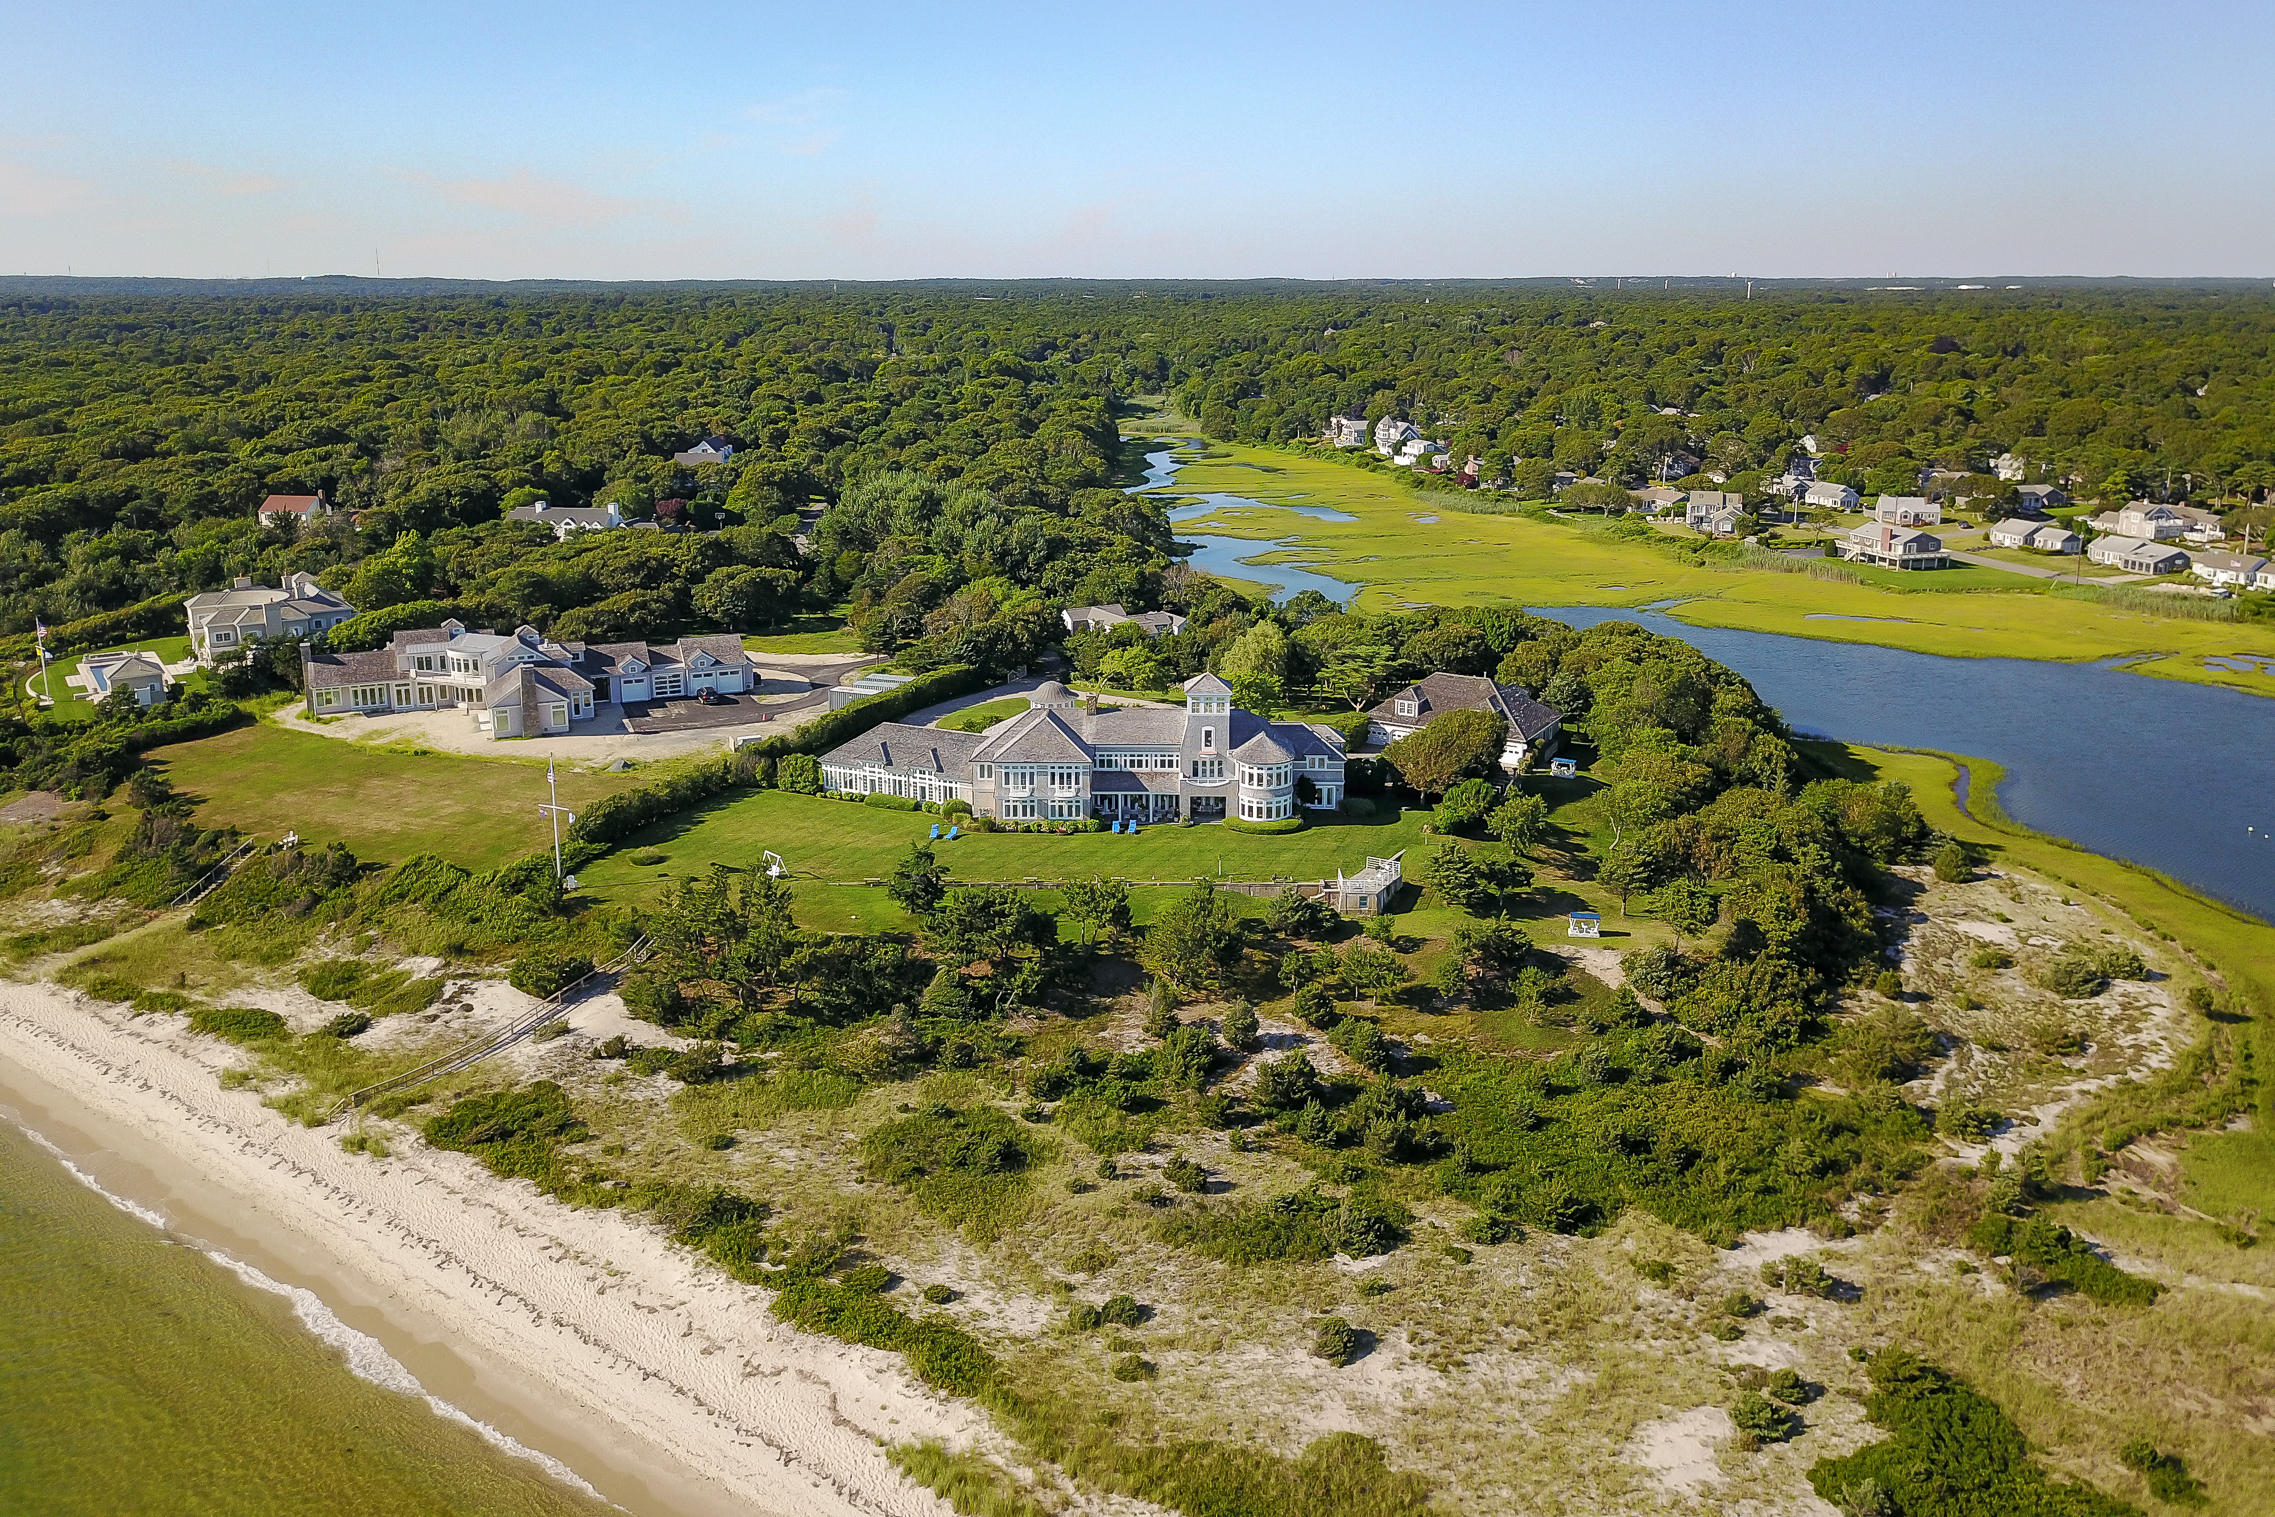 251 Green Dunes Drive, Hyannis Port, Massachusetts, 02672, 5 Bedrooms Bedrooms, ,7 BathroomsBathrooms,Residential,For Sale,251 Green Dunes Drive,21801395